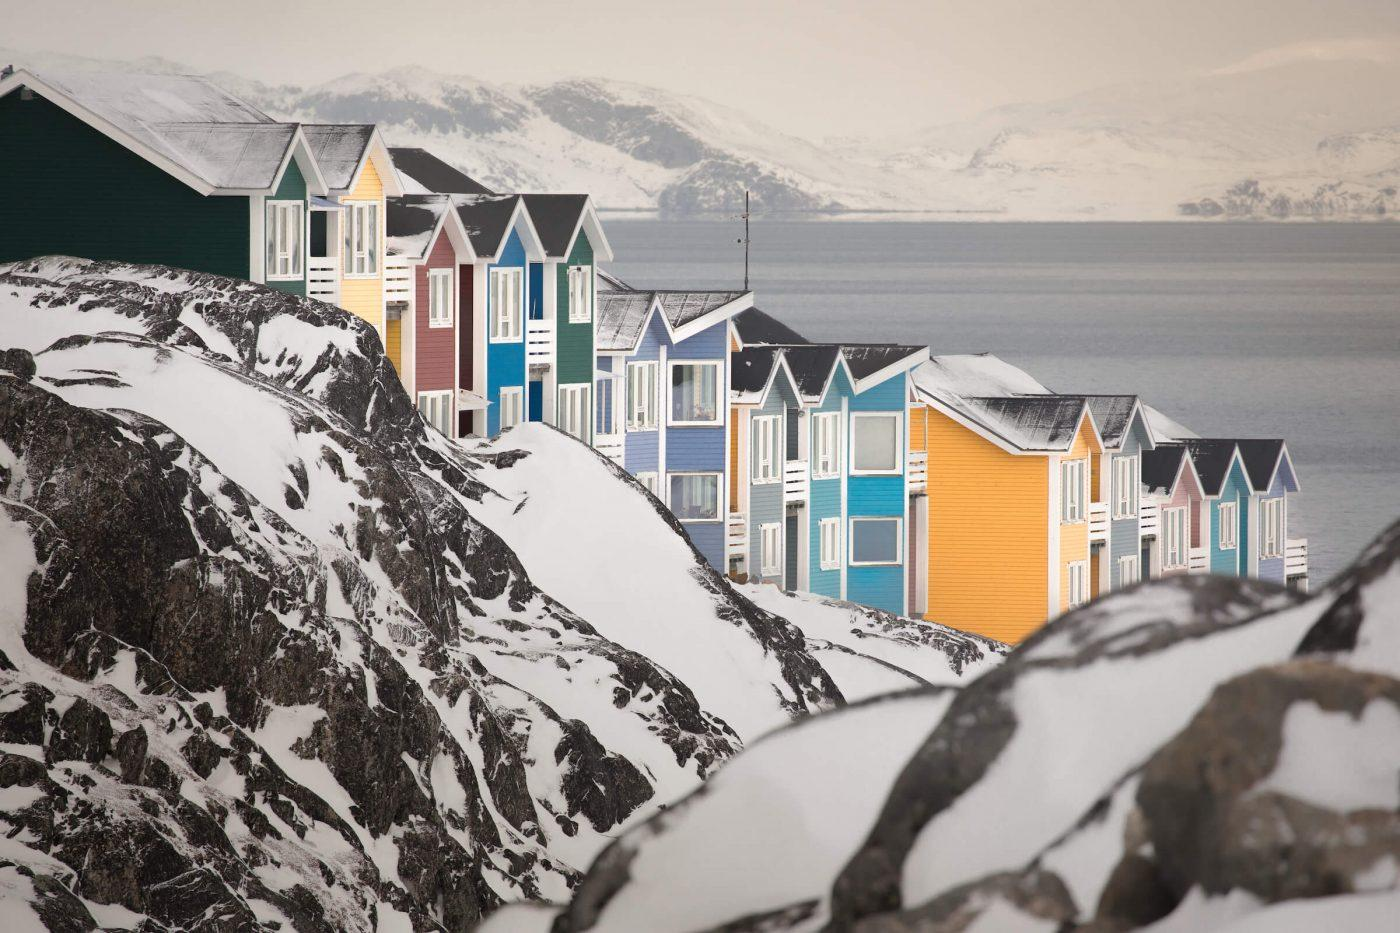 Architechture - Pastel coloured houses in Nuuk hugging the hillsides in Greenland